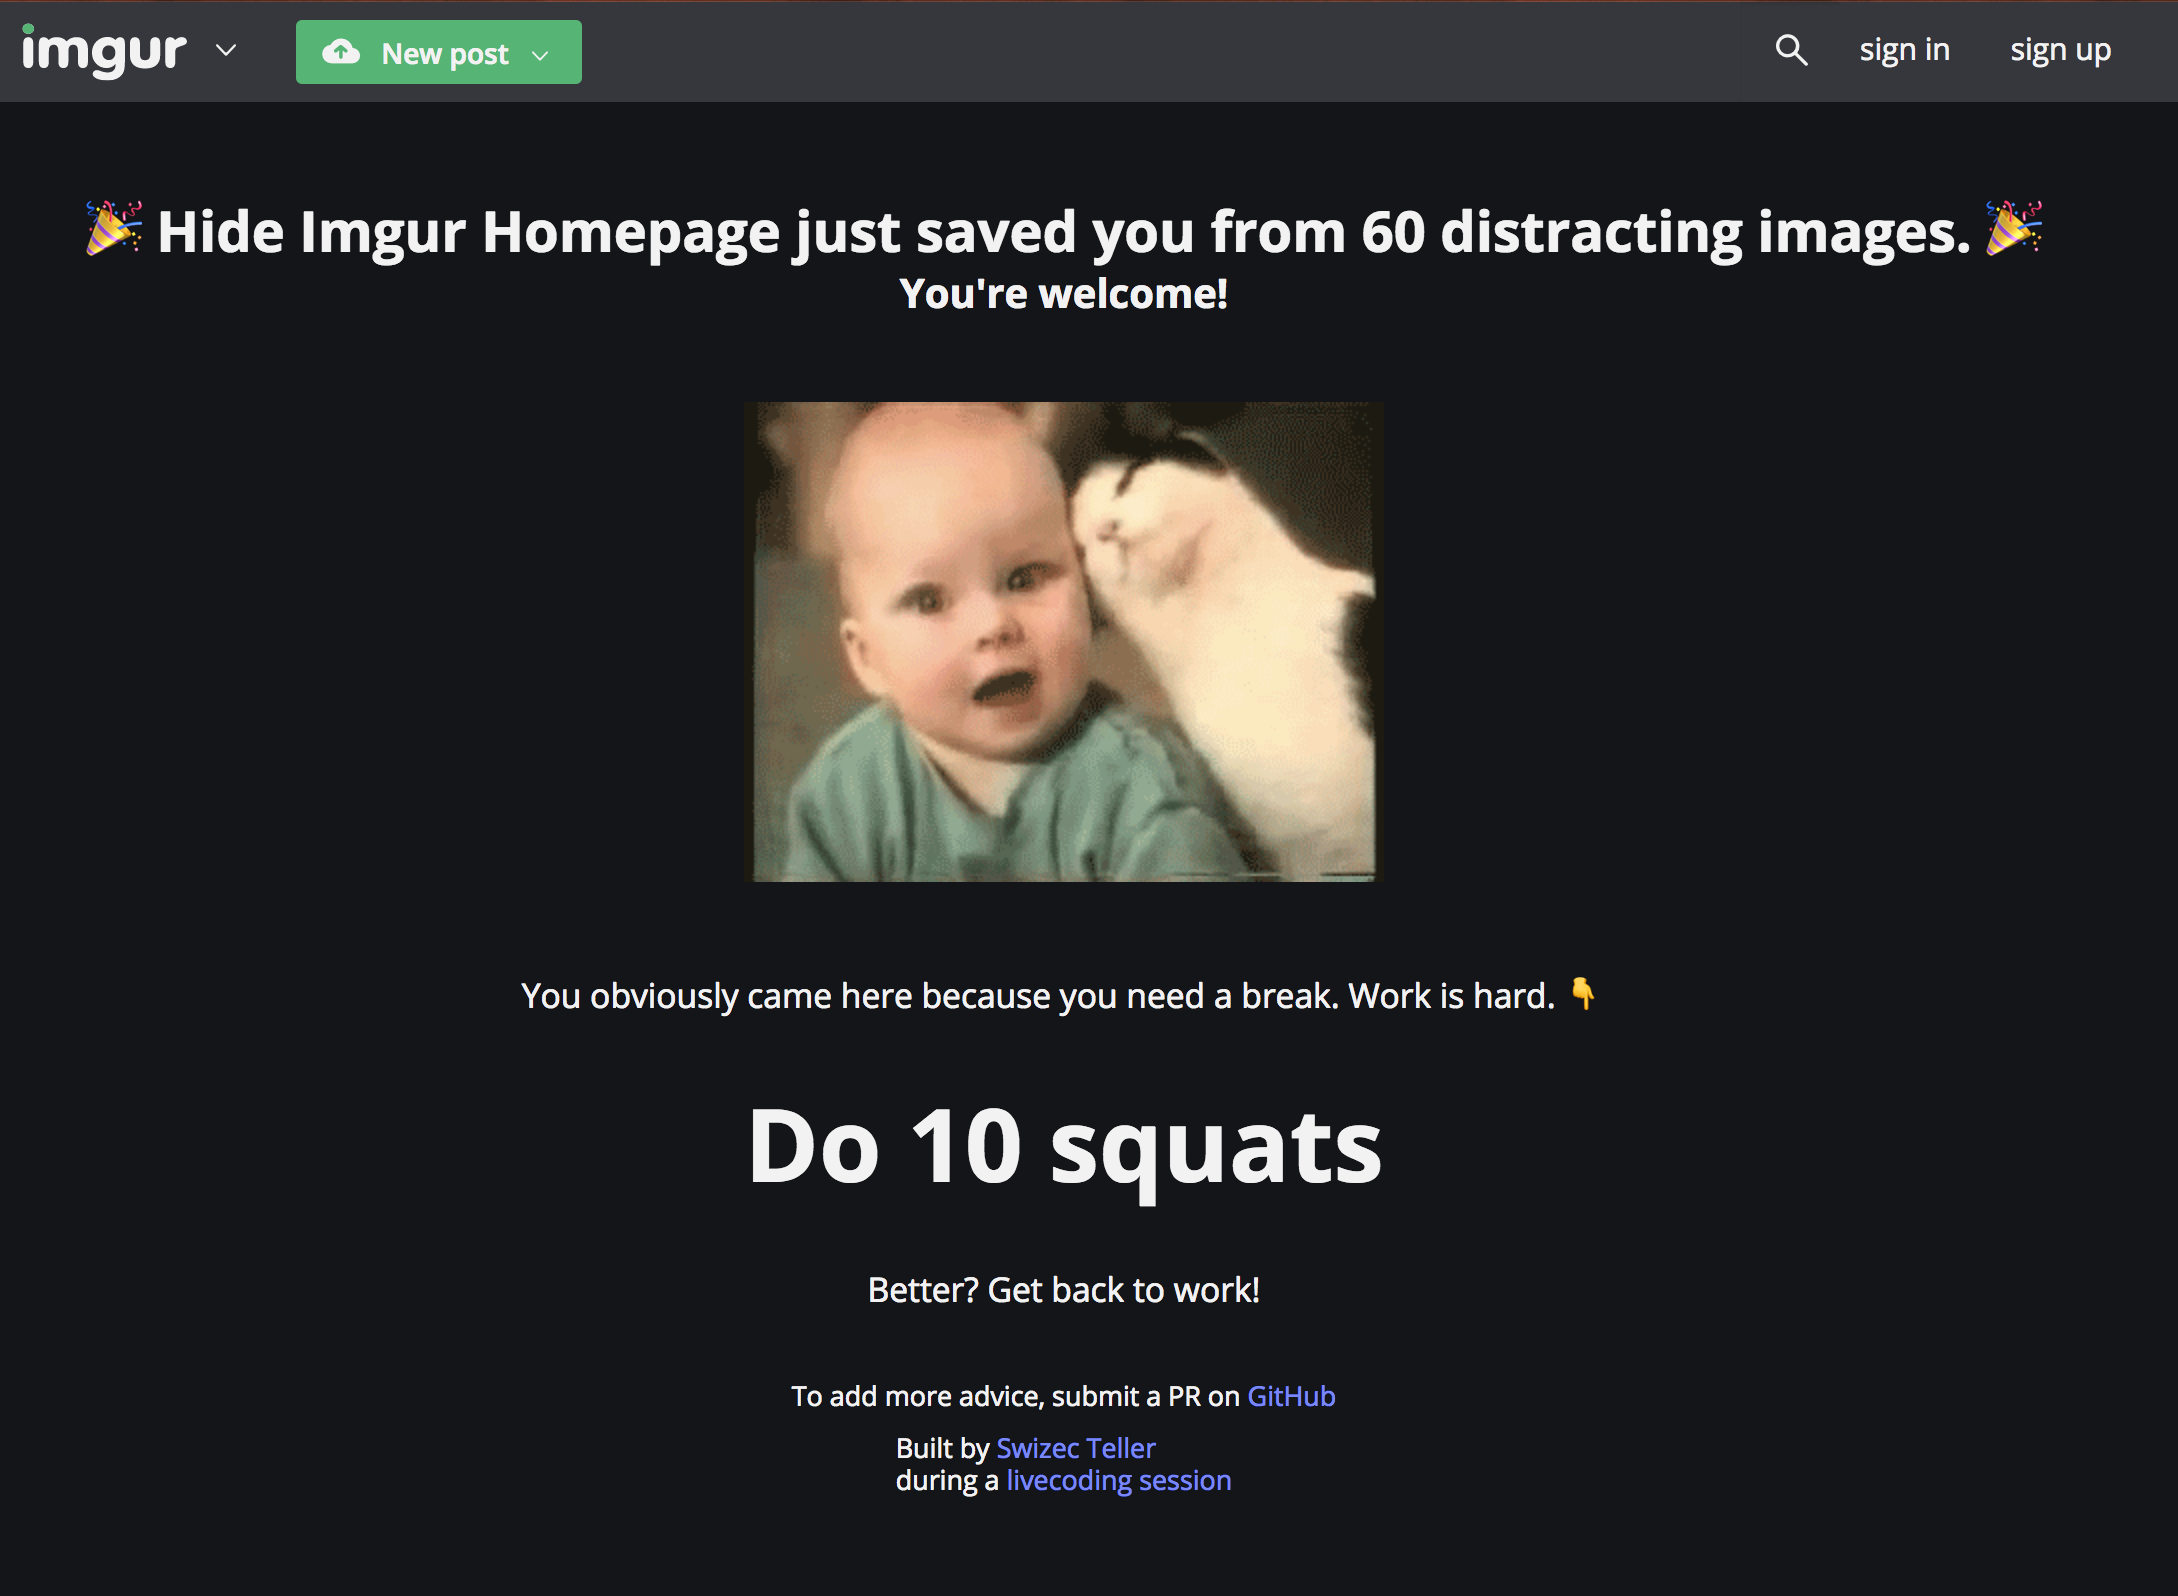 HideImgur replaces the homepage with useful tips